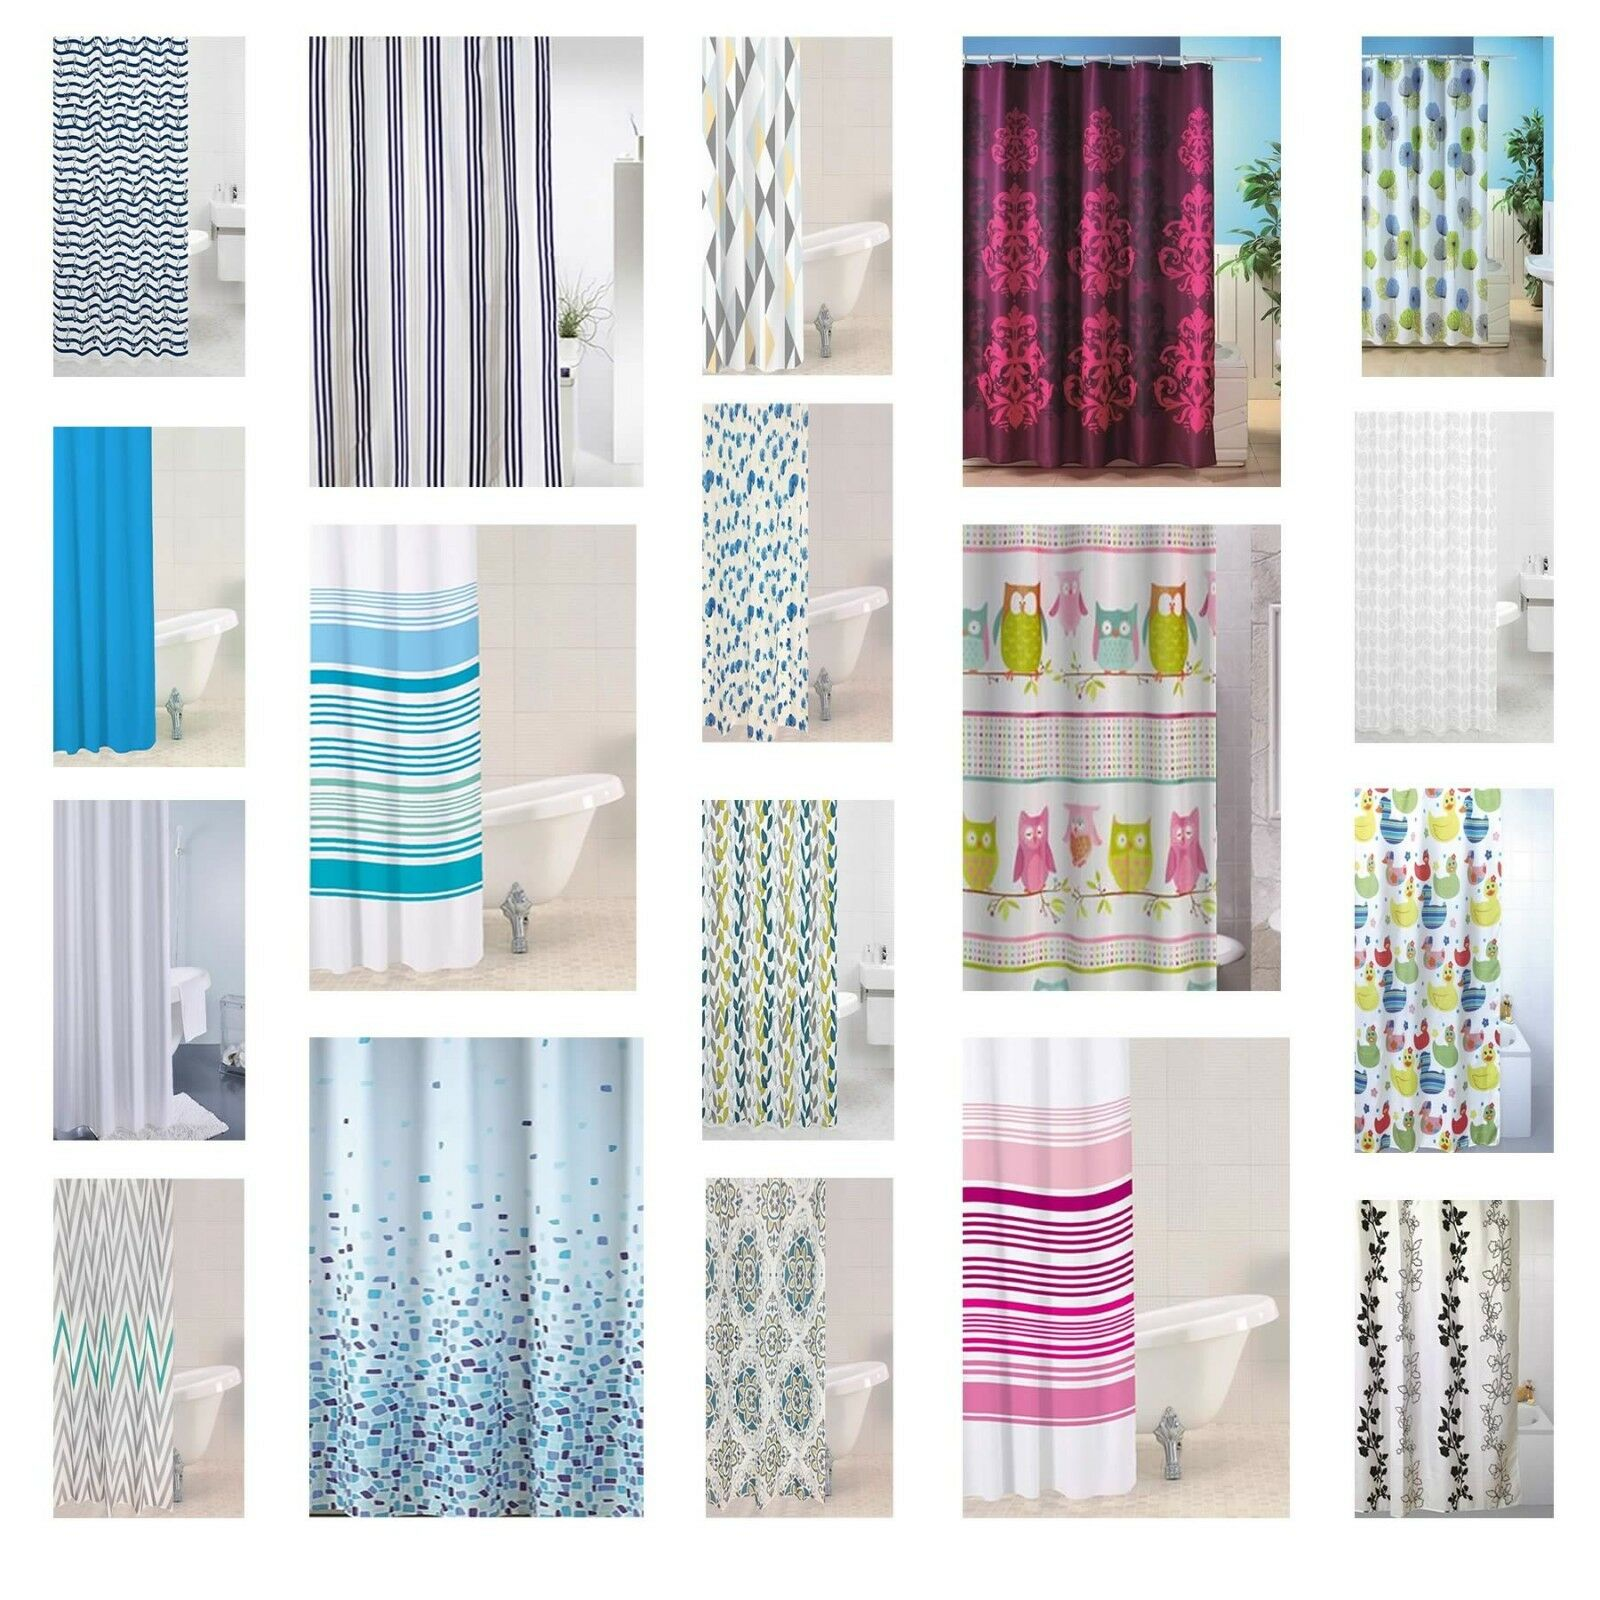 Modern Bathroom Shower Curtain Luxury Designer Range With